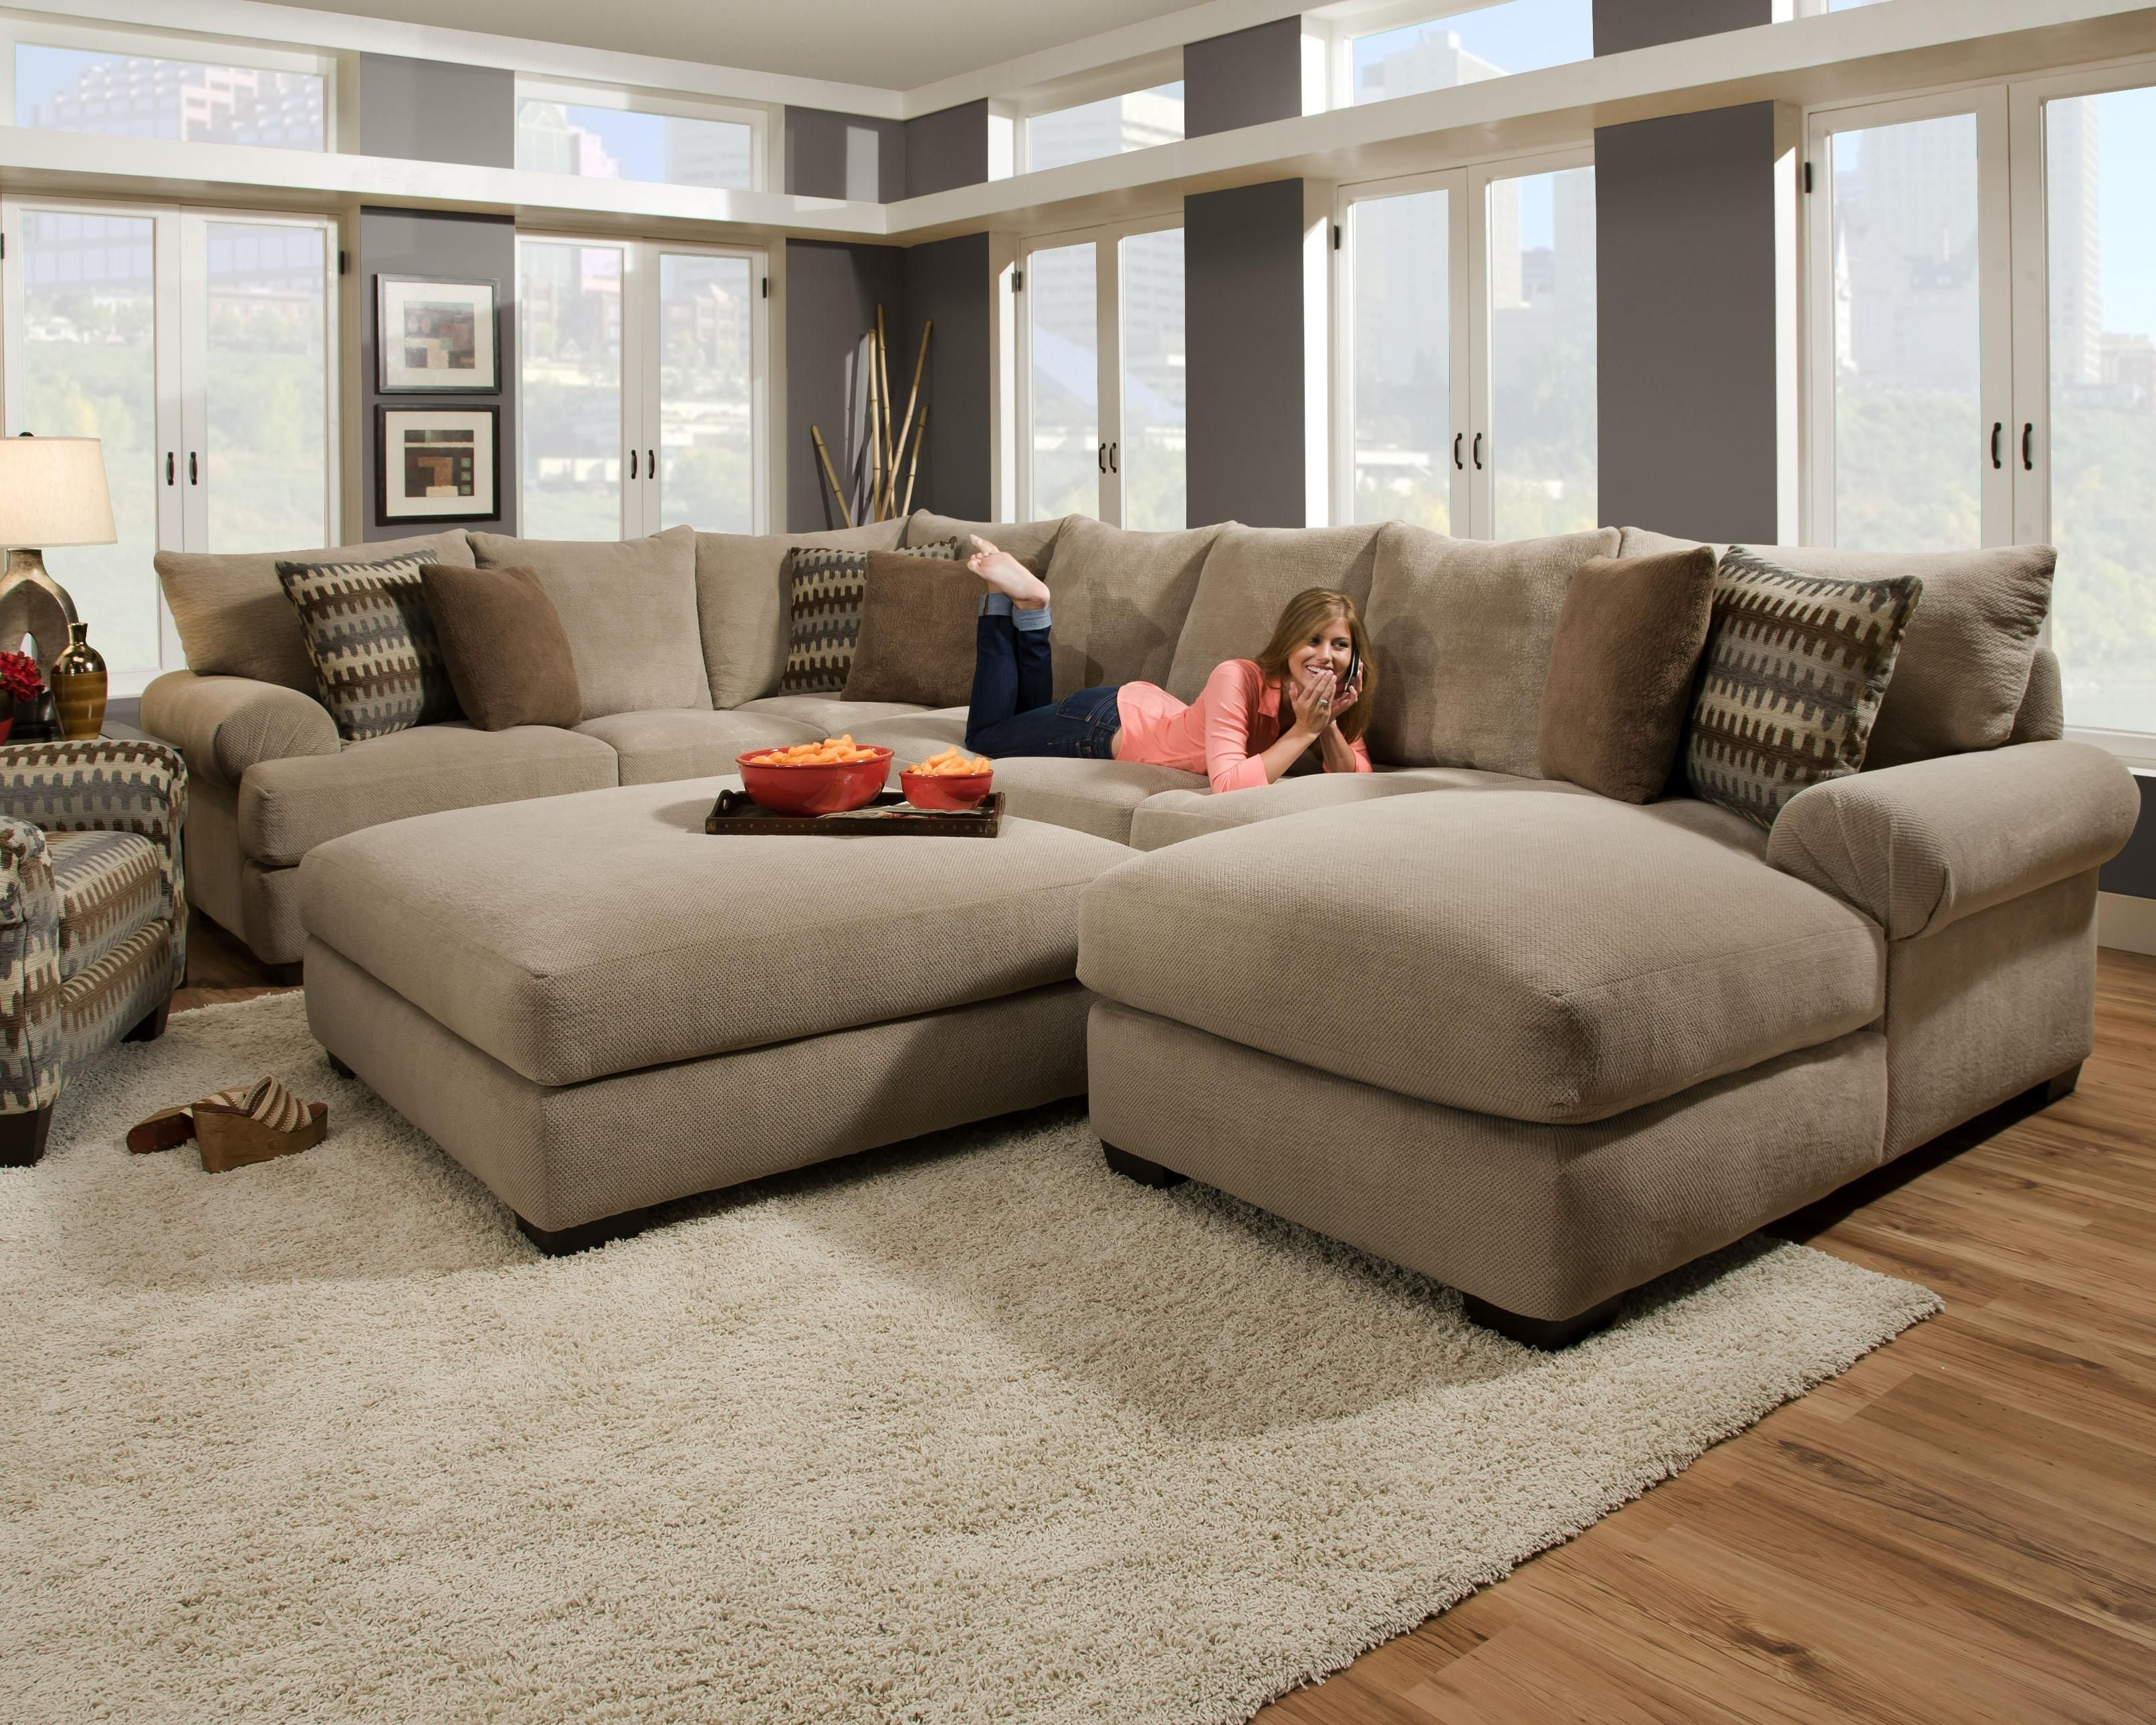 Furniture Design Idea For Living Room And Oversized U Shaped Intended For Sectionals With Oversized Ottoman (Image 3 of 10)